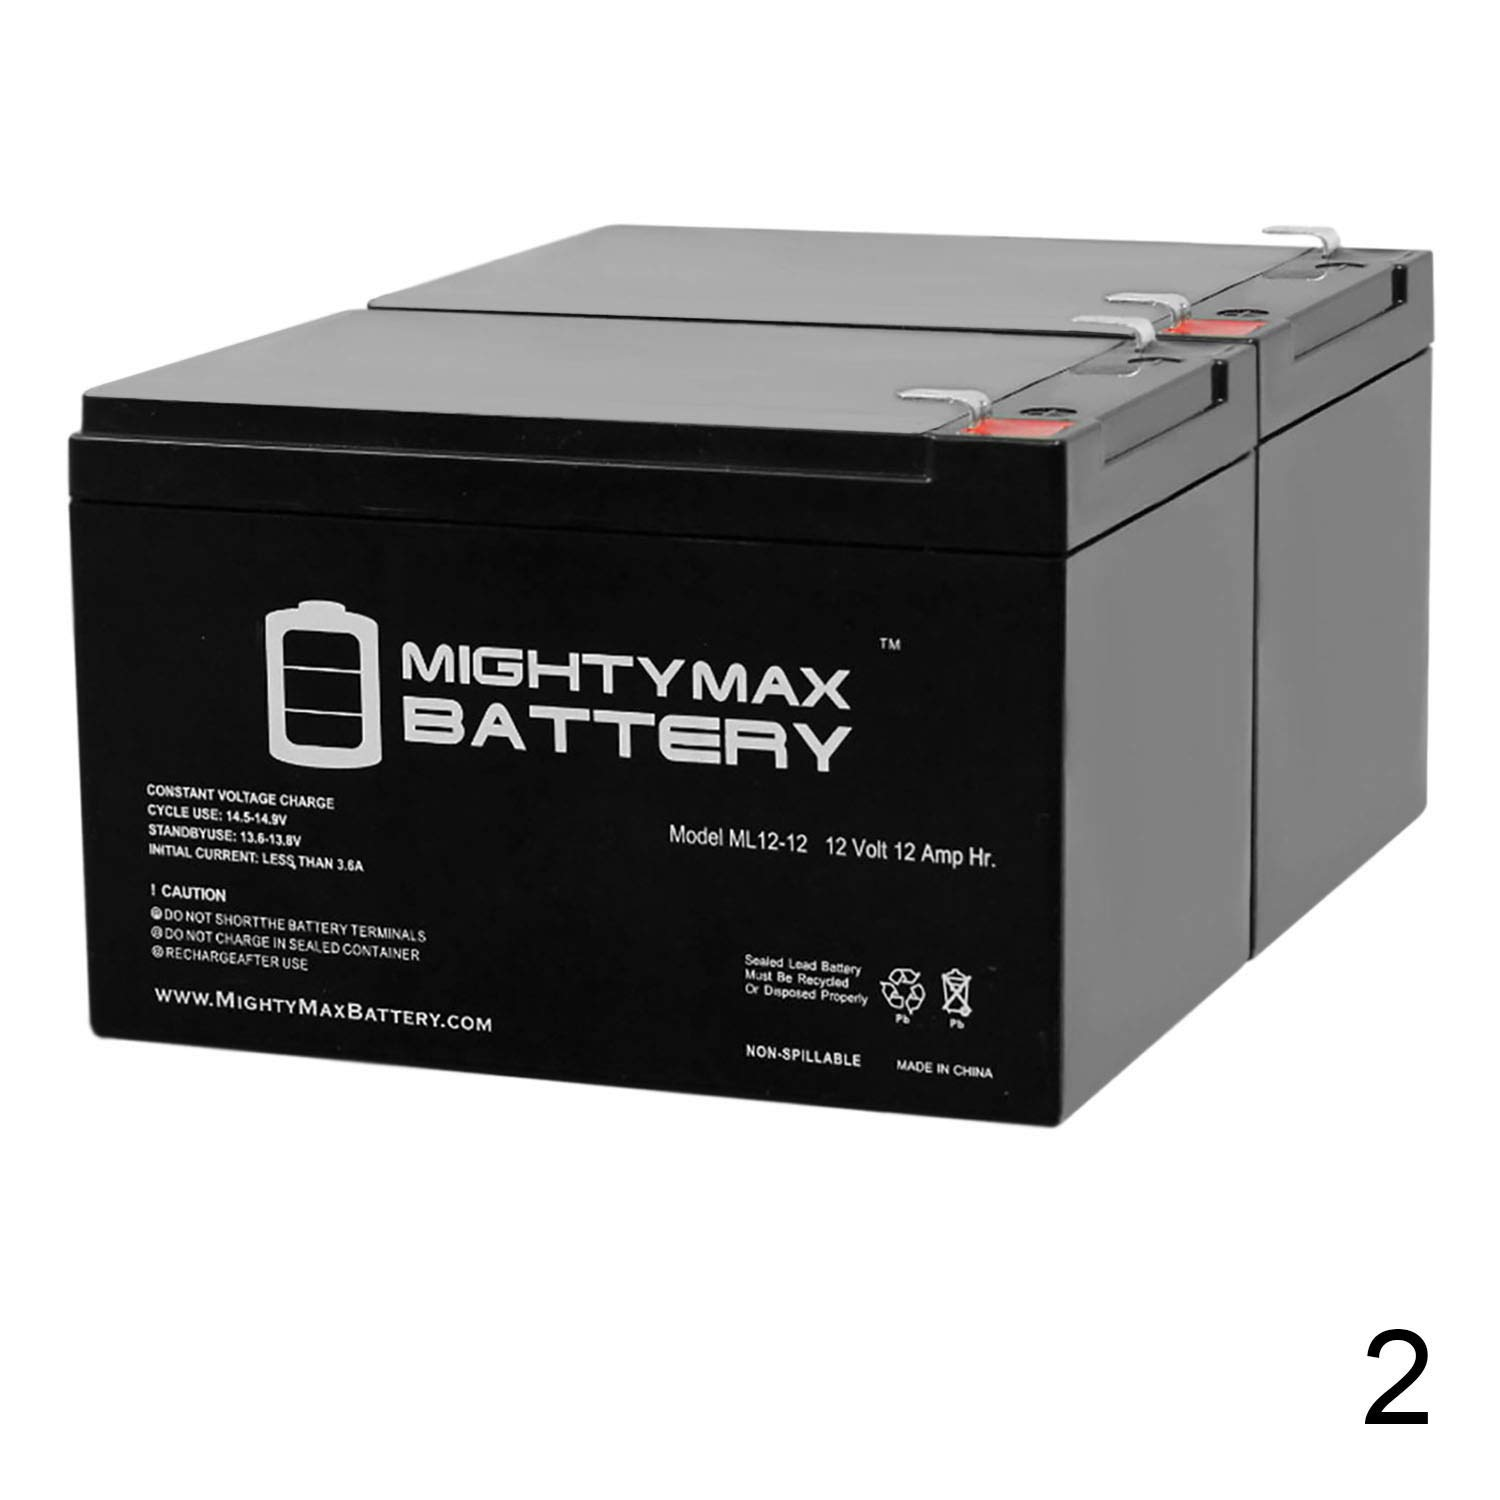 Mighty Max Battery 12V 12Ah F2 Scooter Battery for Enduring CB12-12, CB-12-12 - 2 Pack Brand Product by Mighty Max Battery